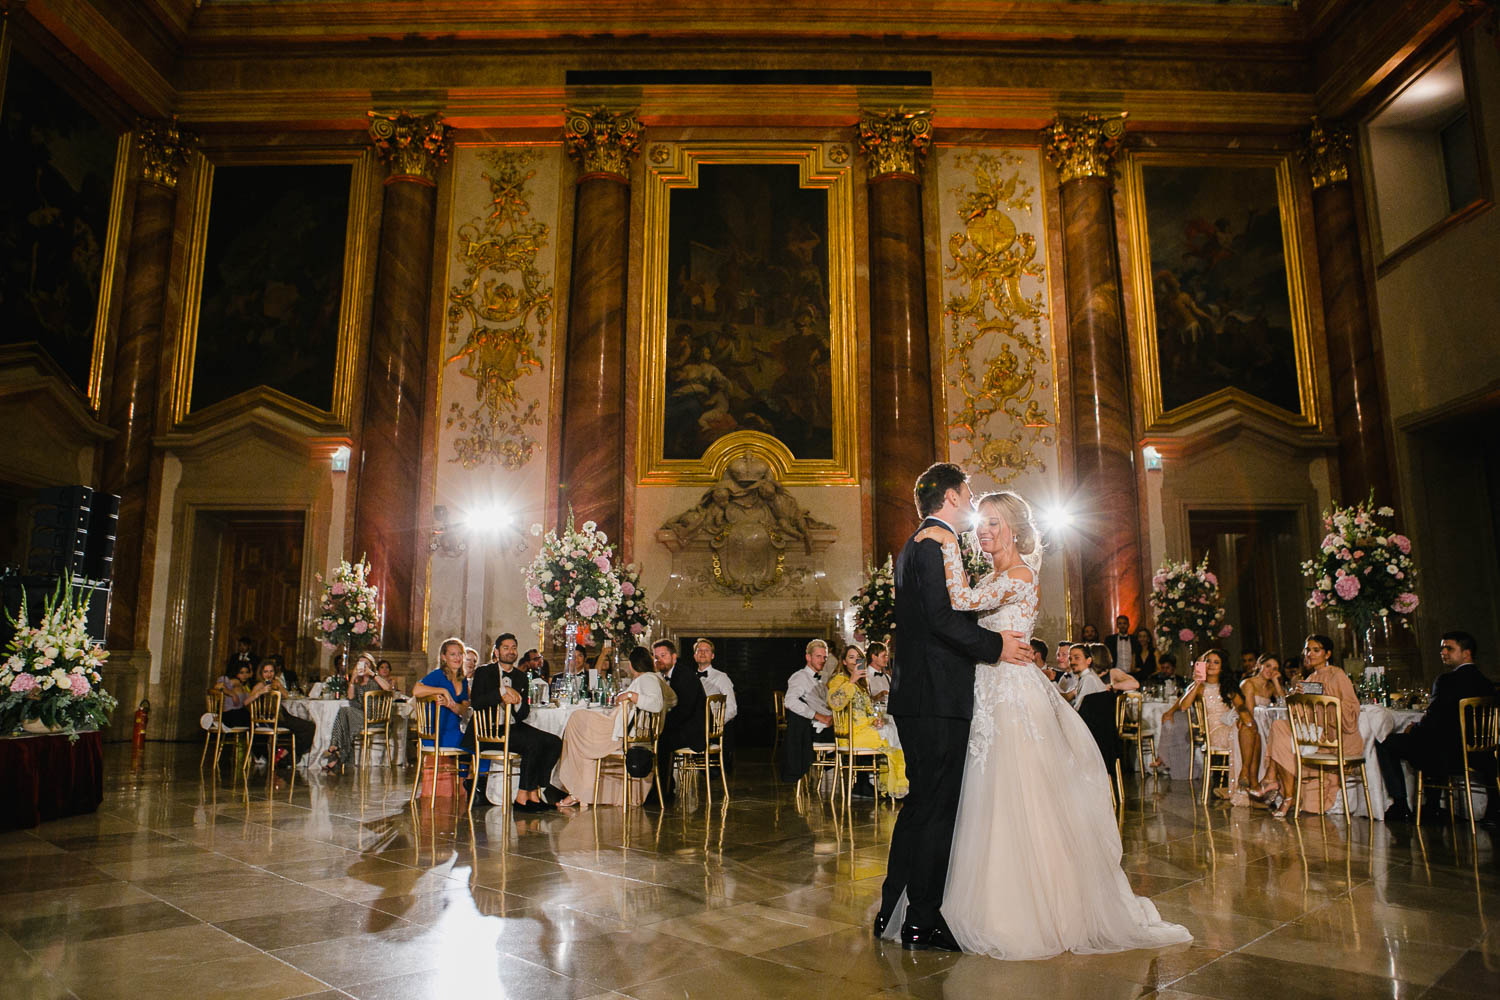 Palais Liechtenstein Wedding First Dance In Ballroom Photo